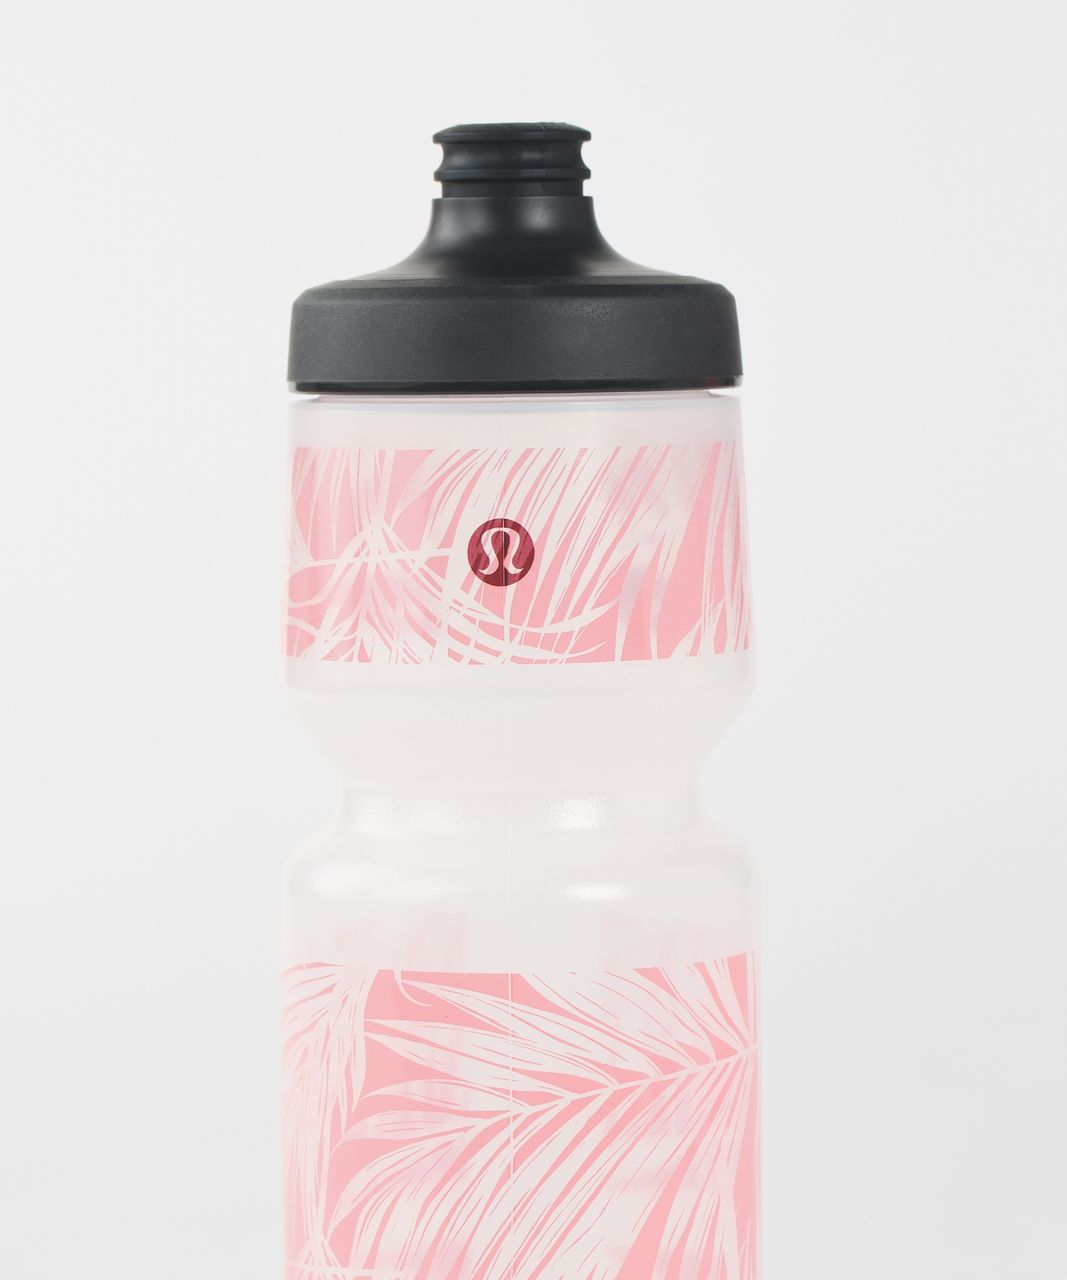 Lululemon Purist Cycling Water Bottle *26 oz - Palm Lace Purist